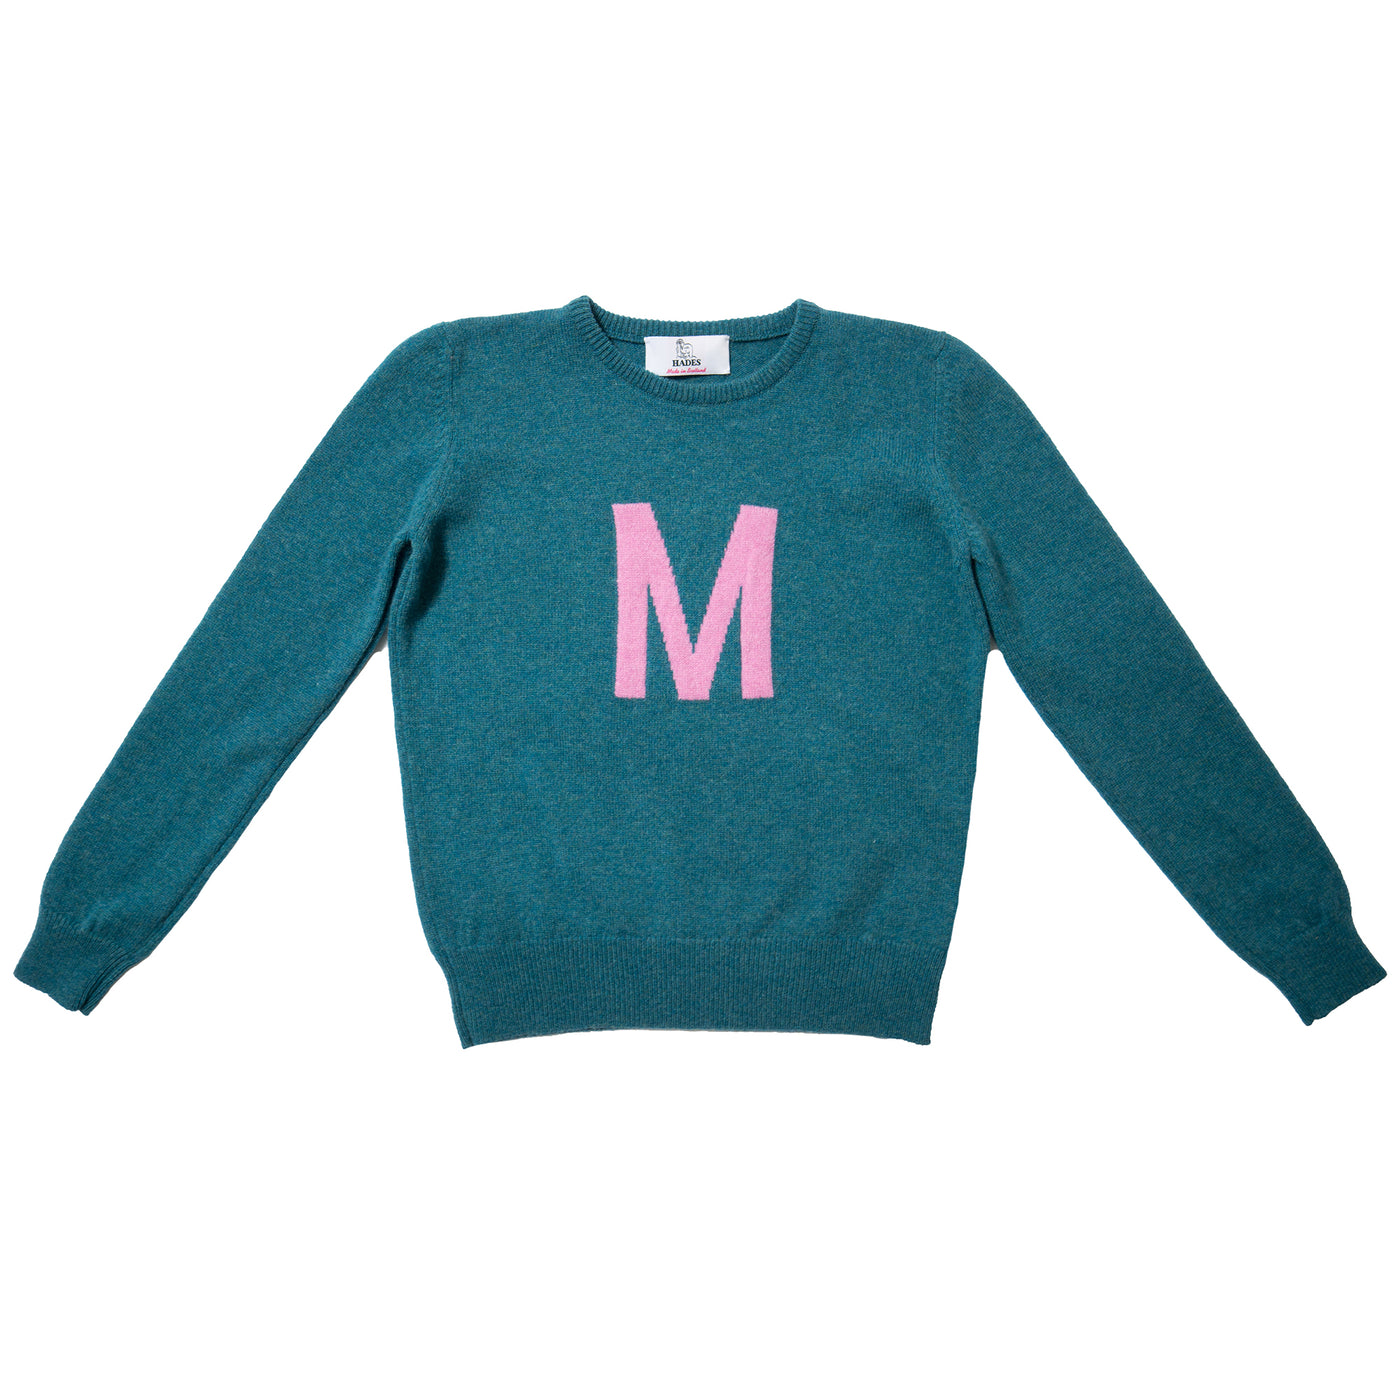 Hades - Alphabet Knit Jumper M